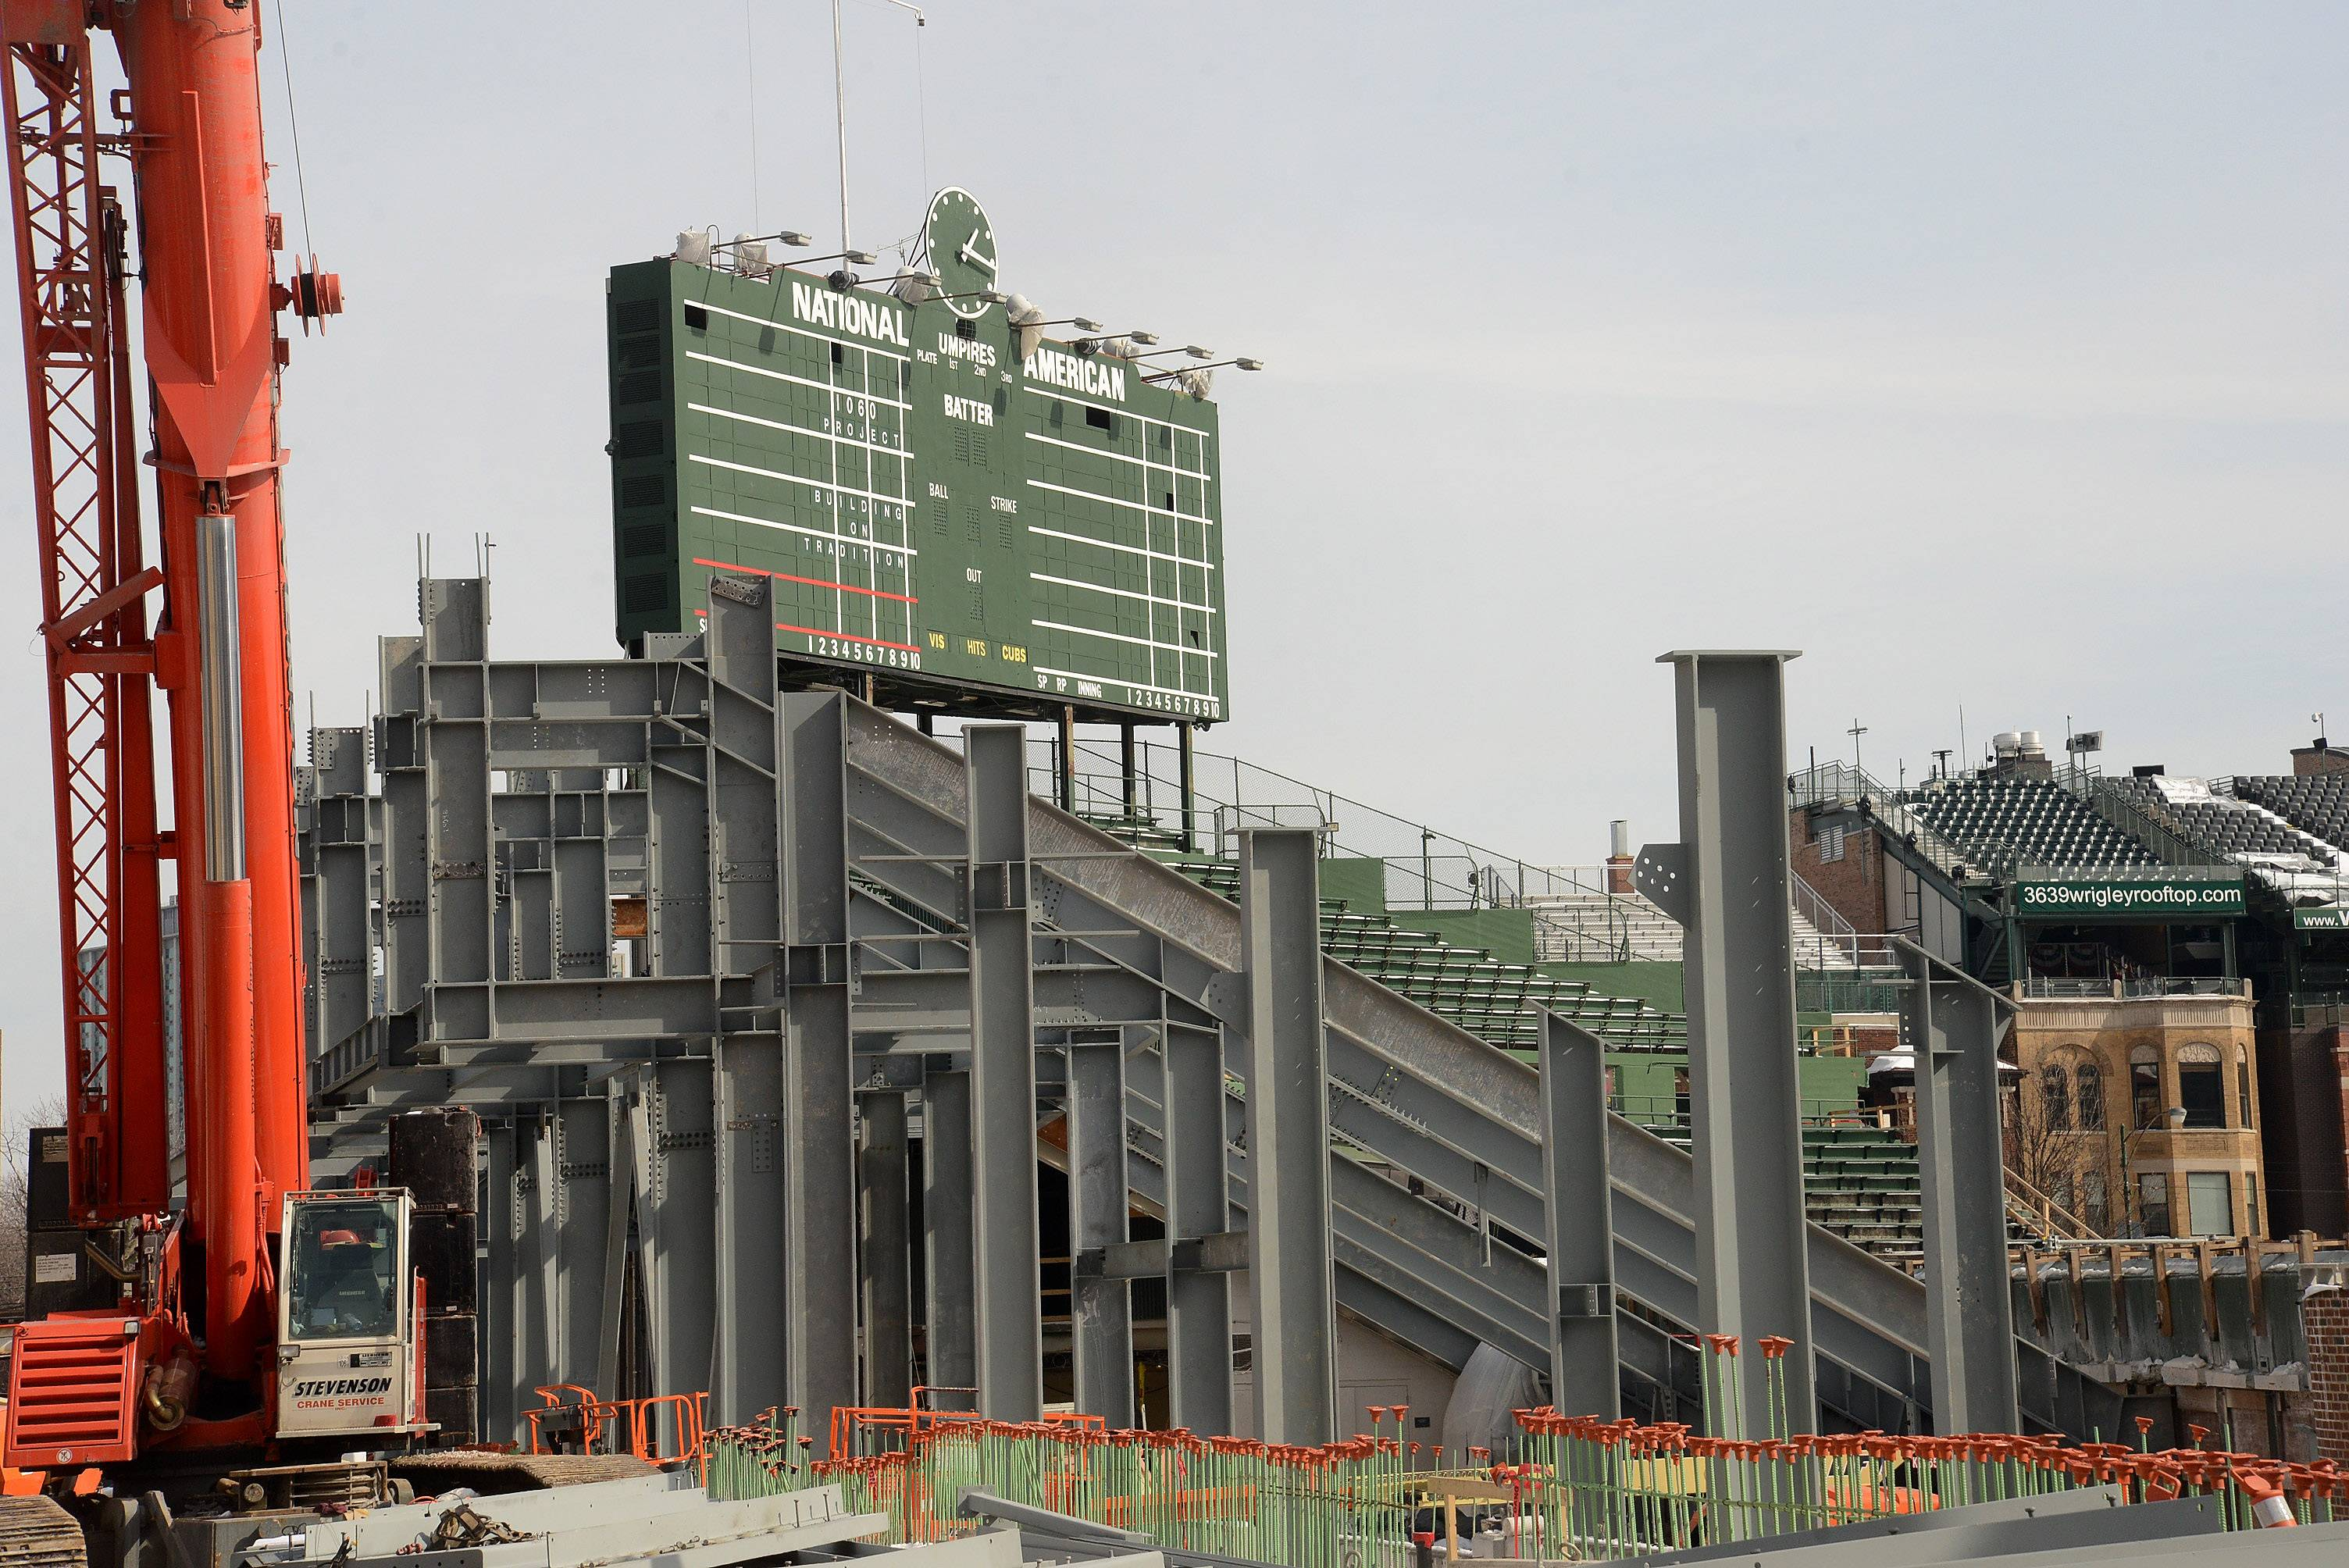 Cubs: Wrigley's right-field bleachers may be delayed until June